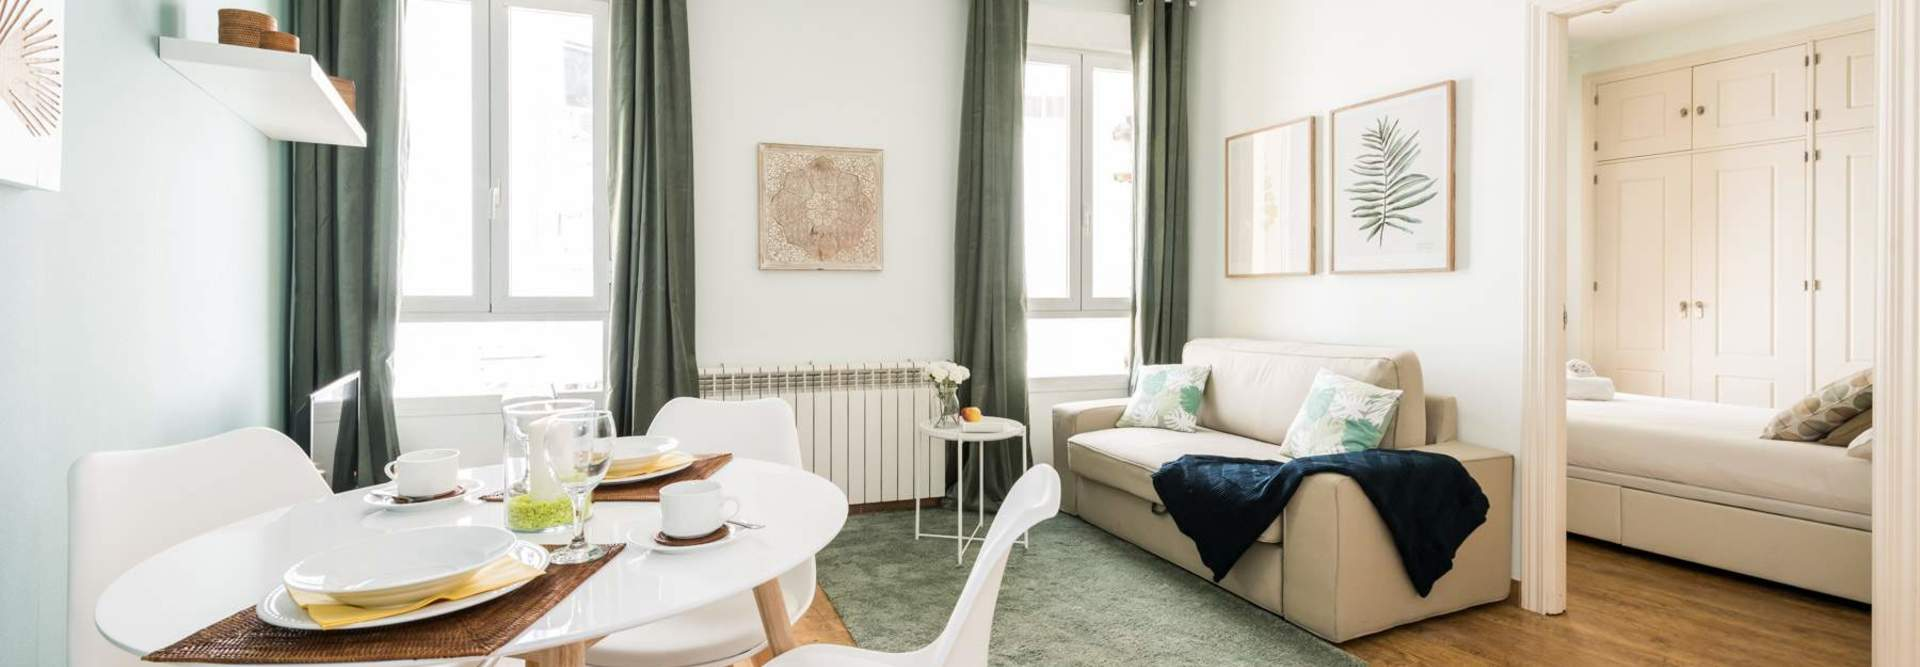 Home alquiler apartamento madrid centro por d as  27